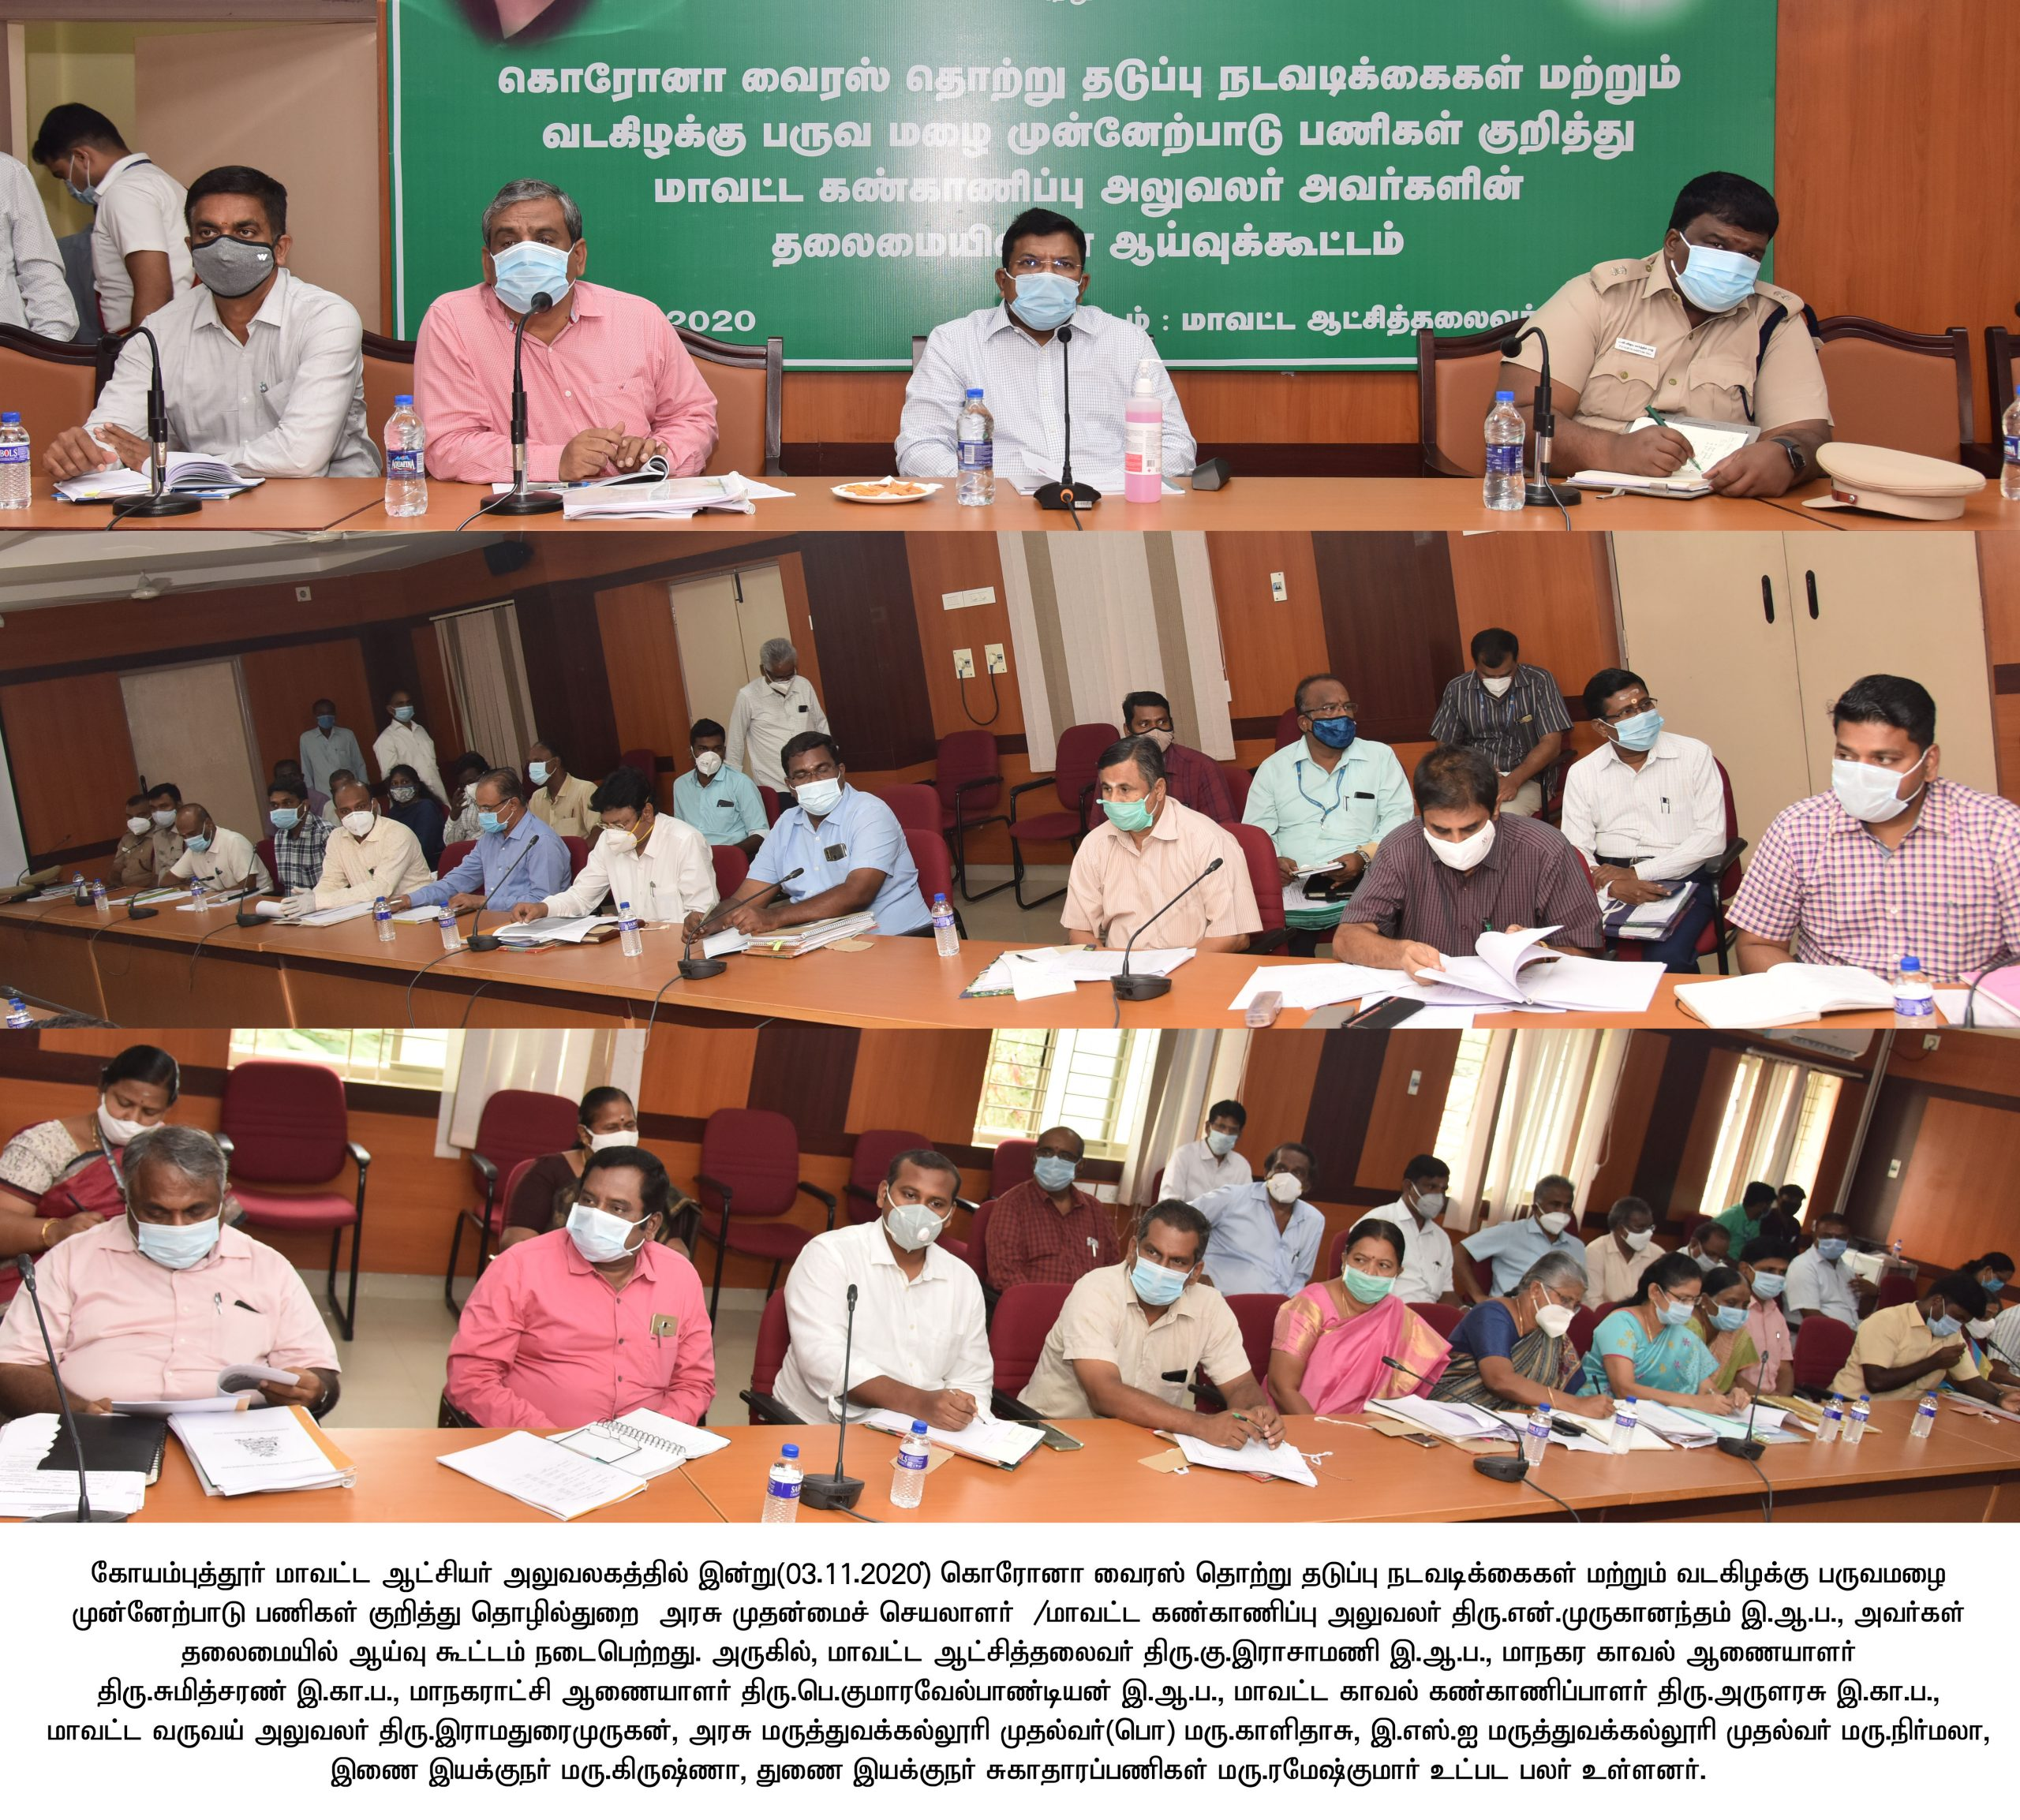 Corona Virus Prevention work and North East monsoon season Review meeting conducted by District Monitoring Officer